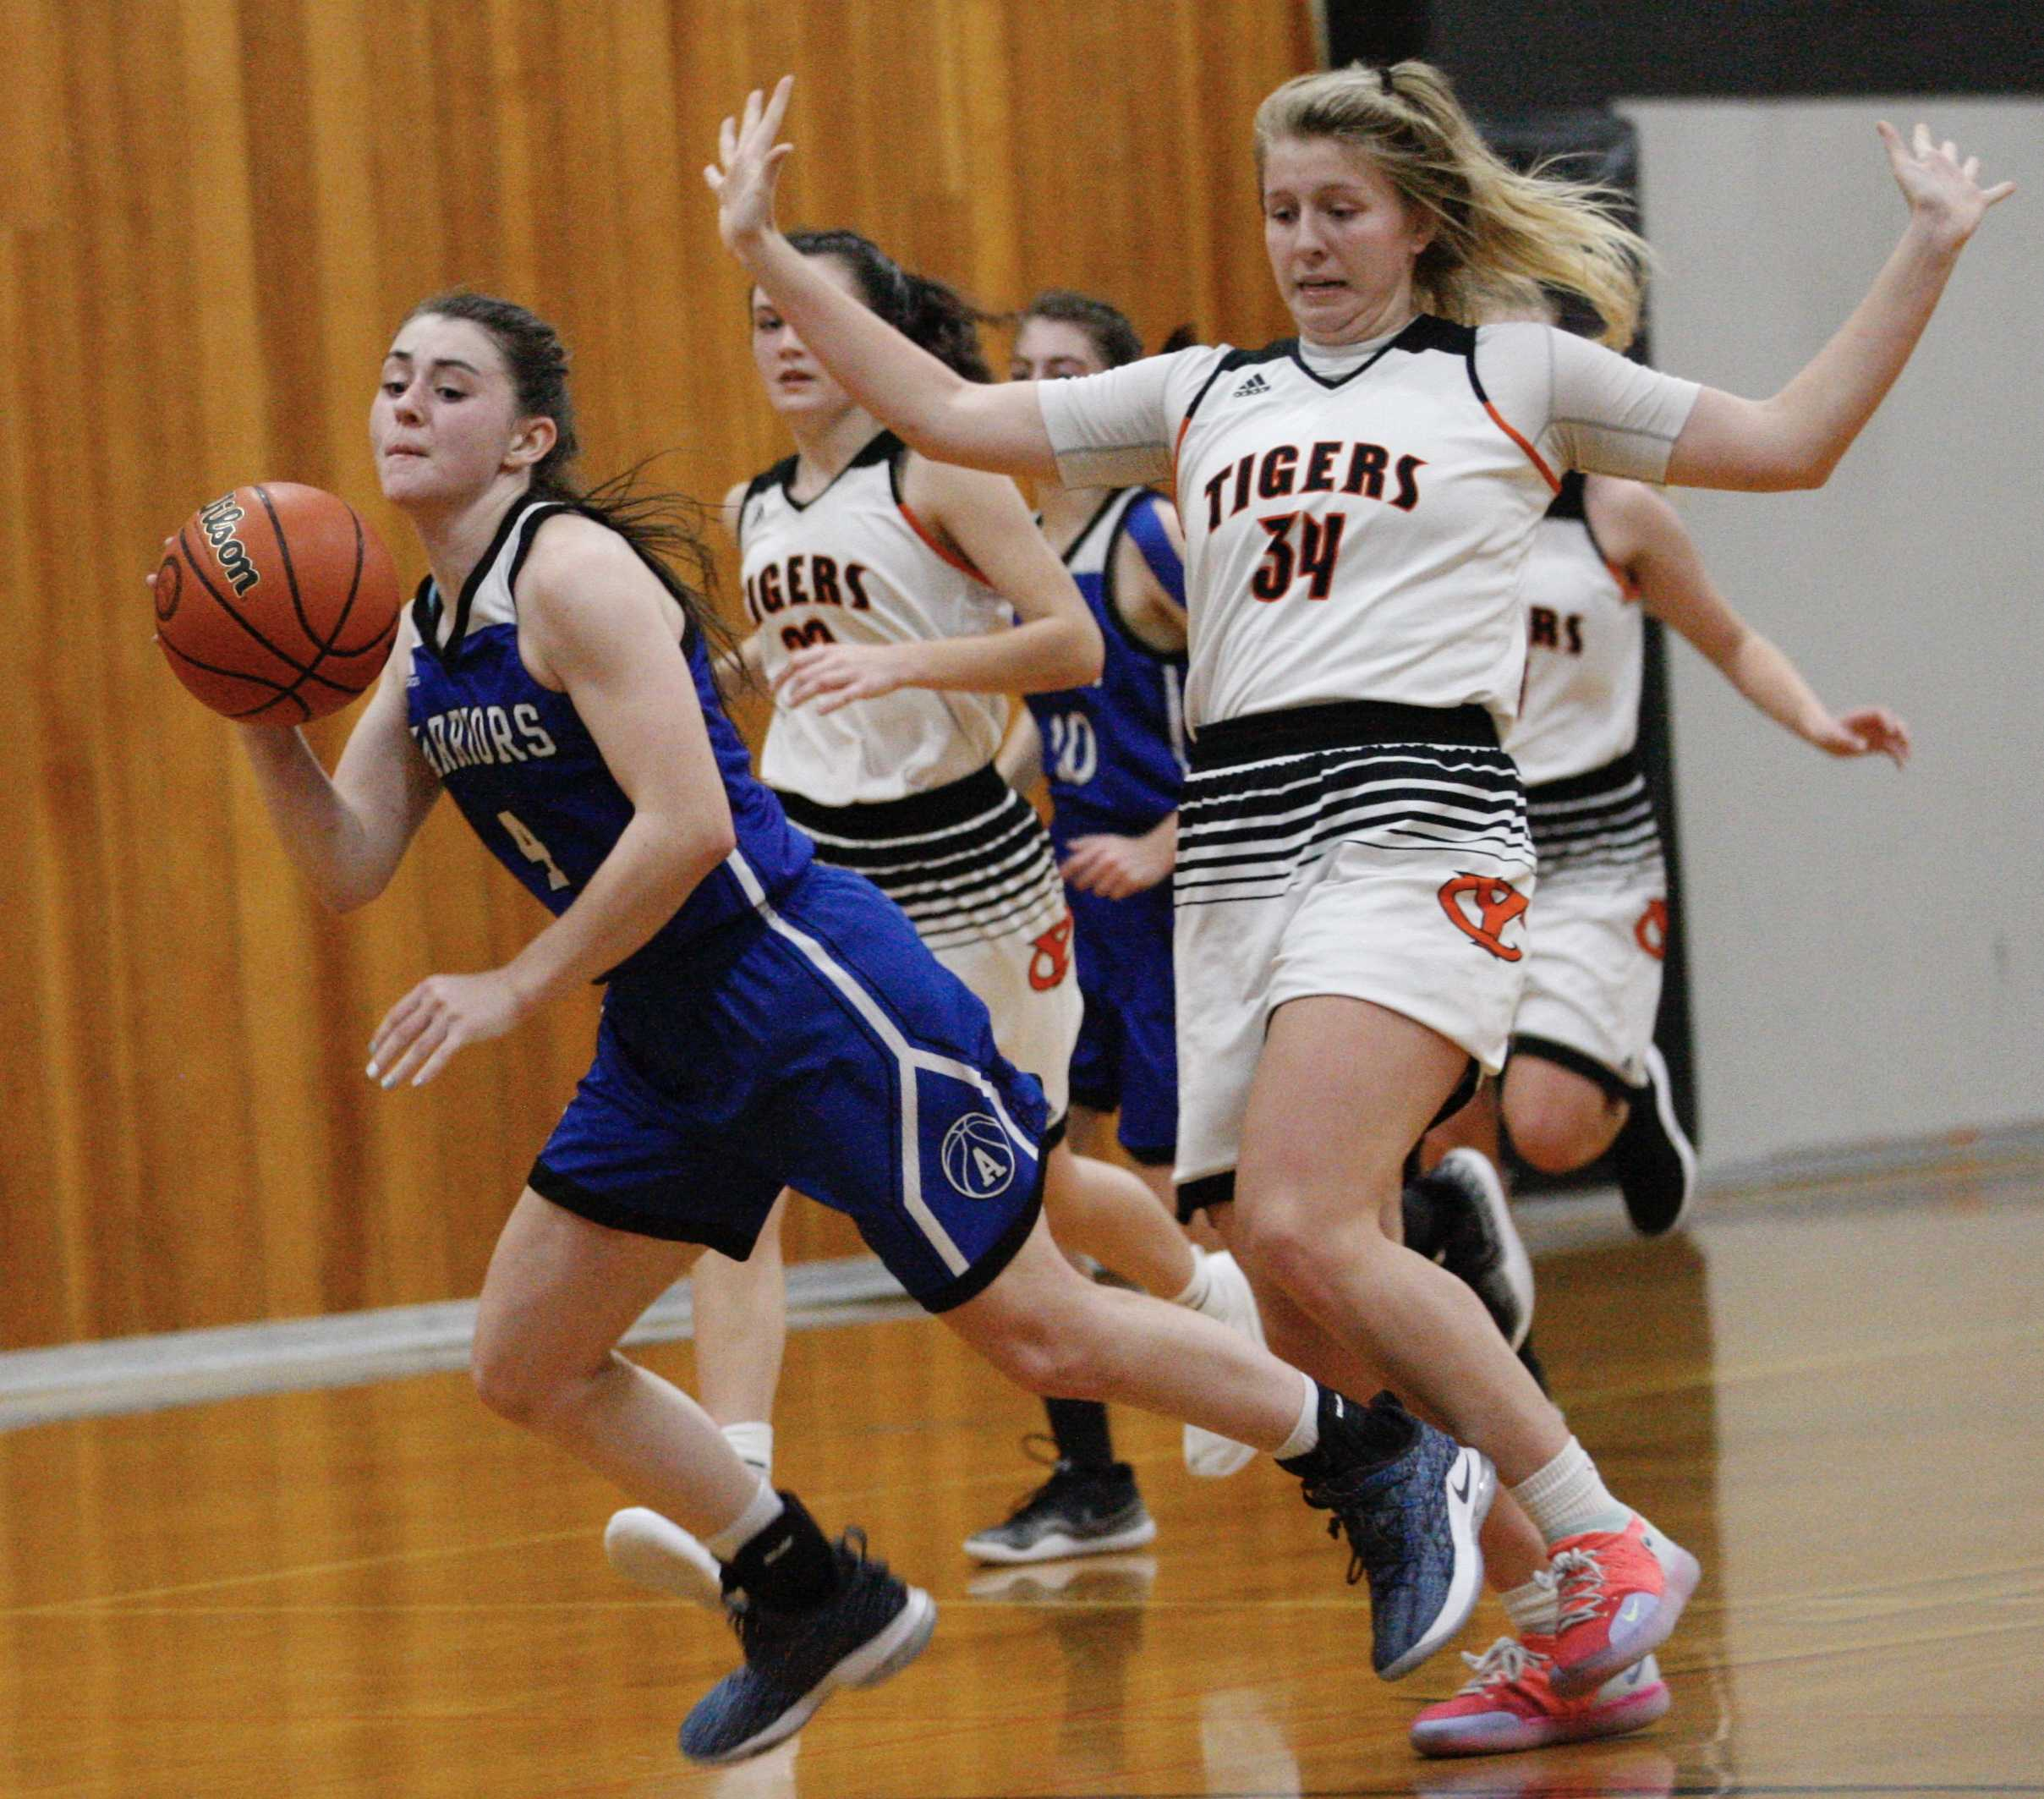 Amity's Keeley Graham (left) goes flying after getting tripped up by Yamhill-Carlton's Sadie Horne on Tuesday night.